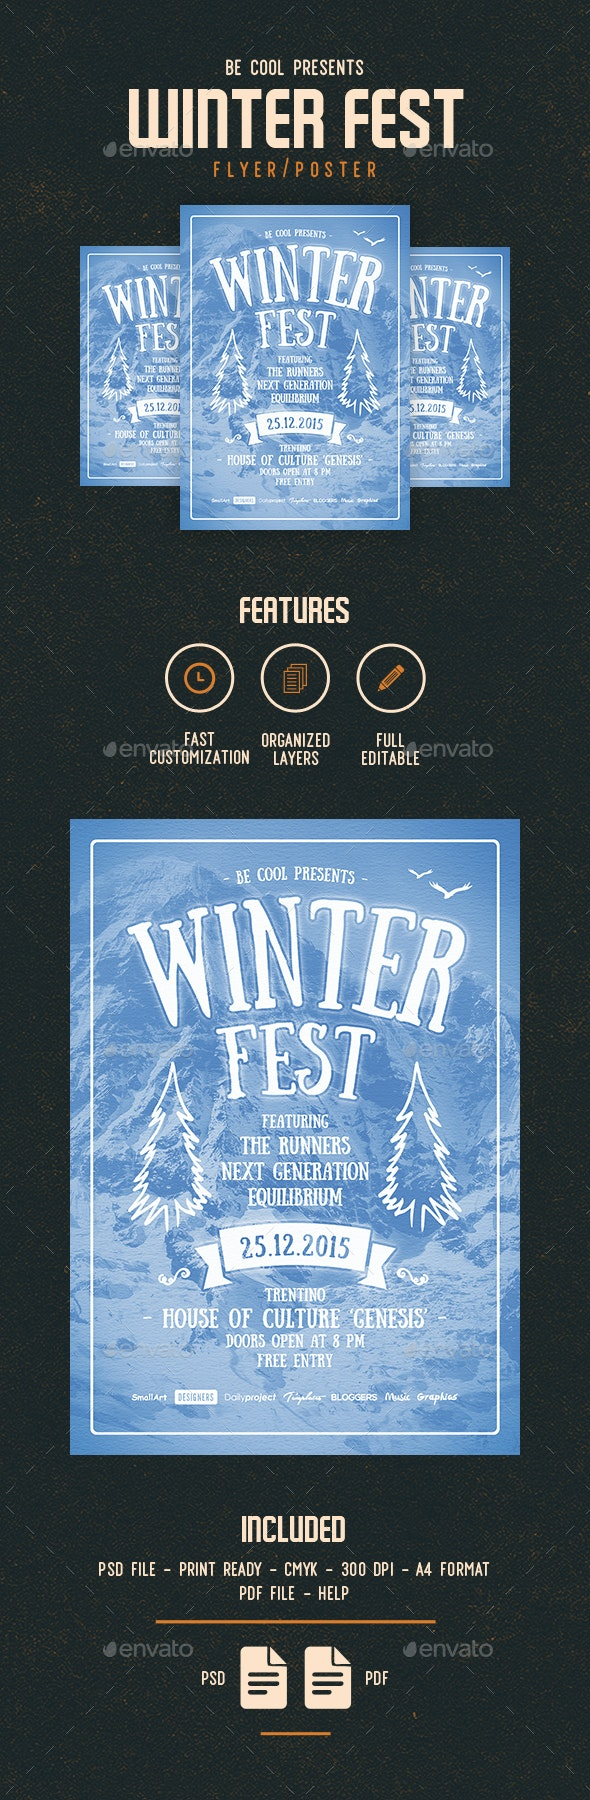 Winter Festival Flyer/Poster - Concerts Events